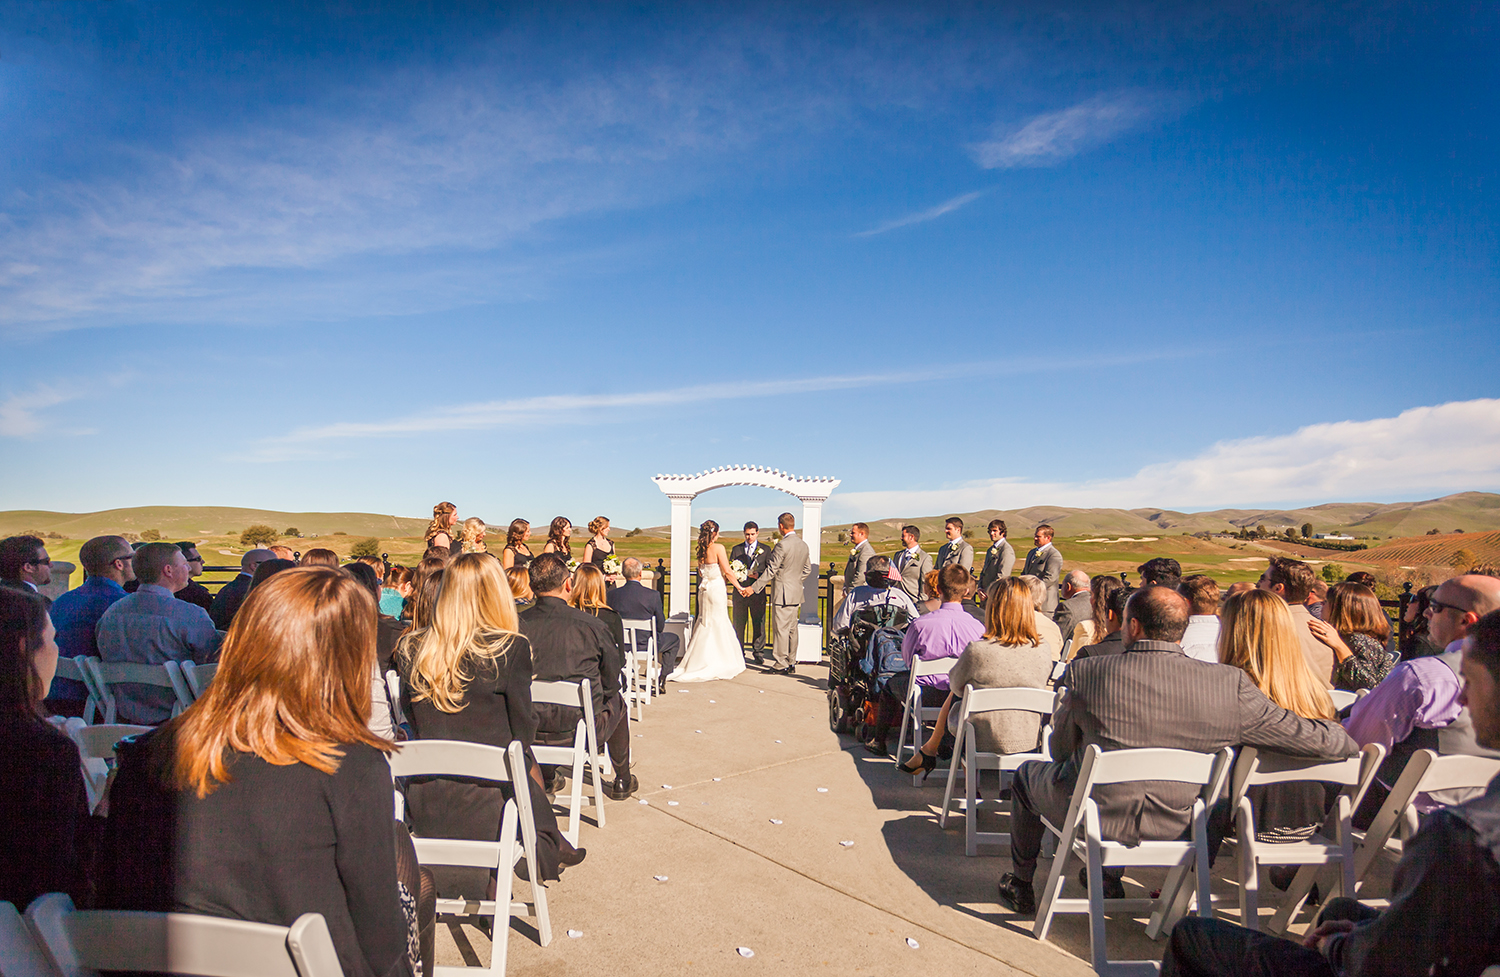 Dena_Rooney_Wedding_Photographer_Poppy_Ridge_007.jpg